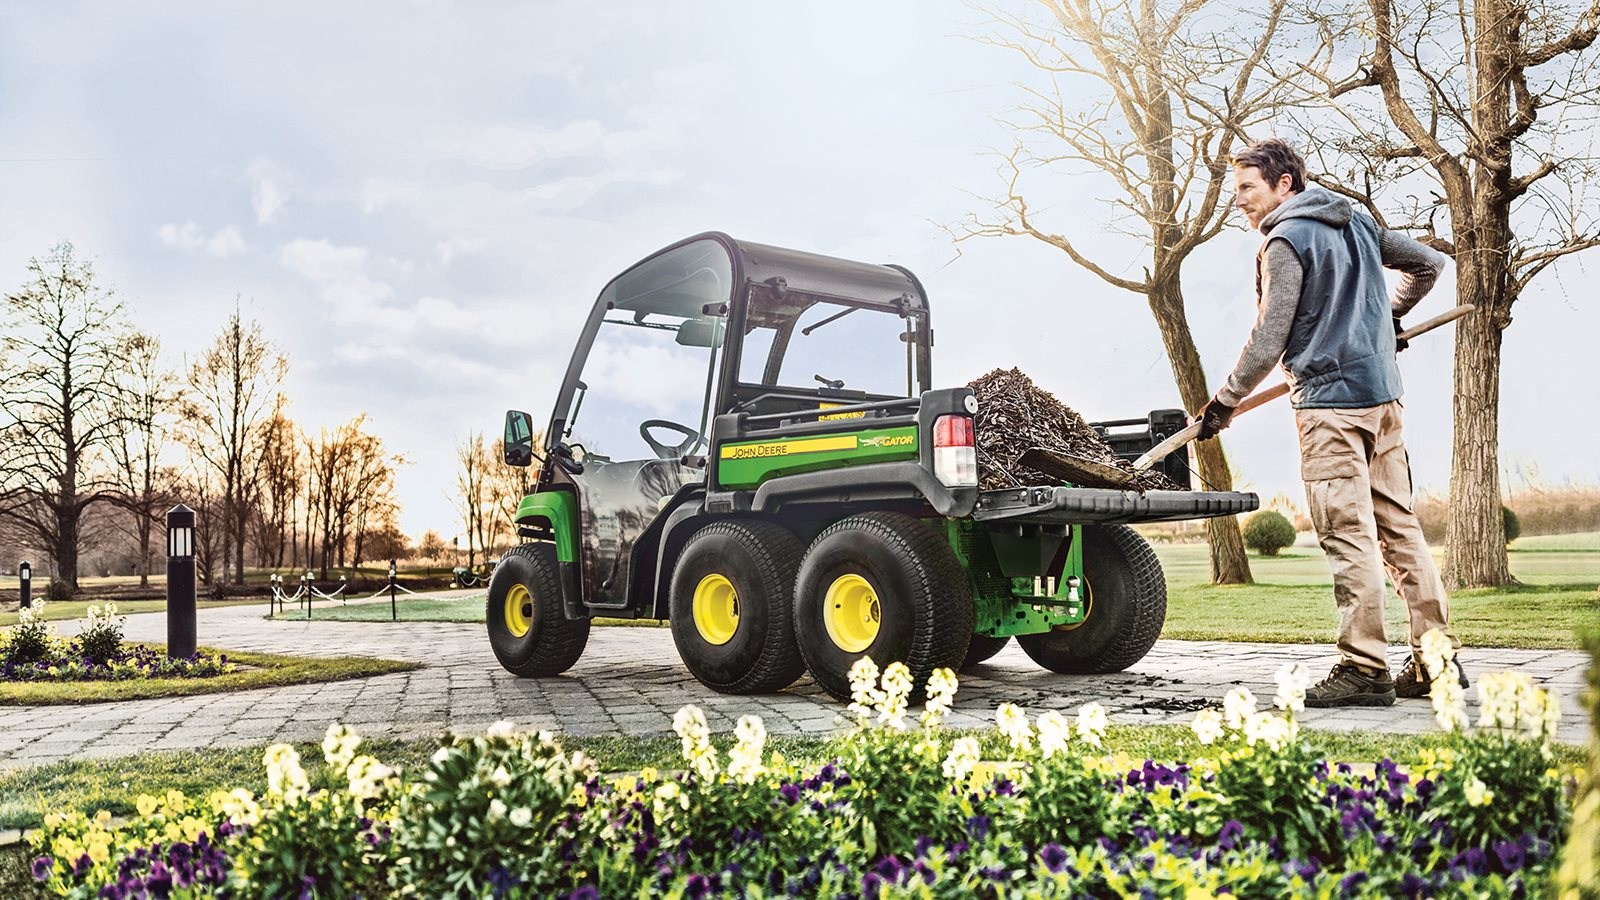 John-Deere-Gator-TH6x4-topimage.jpg